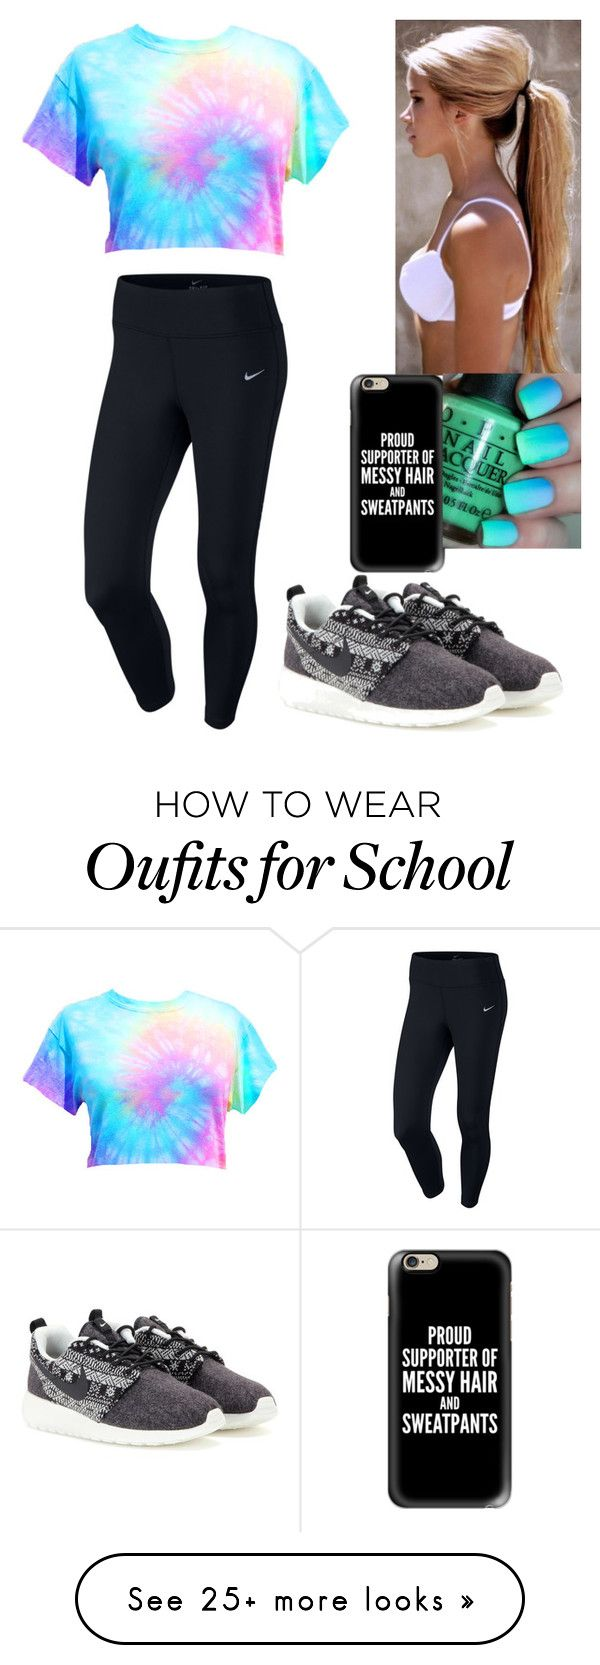 17 Best ideas about Athletic Outfits on Pinterest | Workout outfits Sport outfits and Nike ...